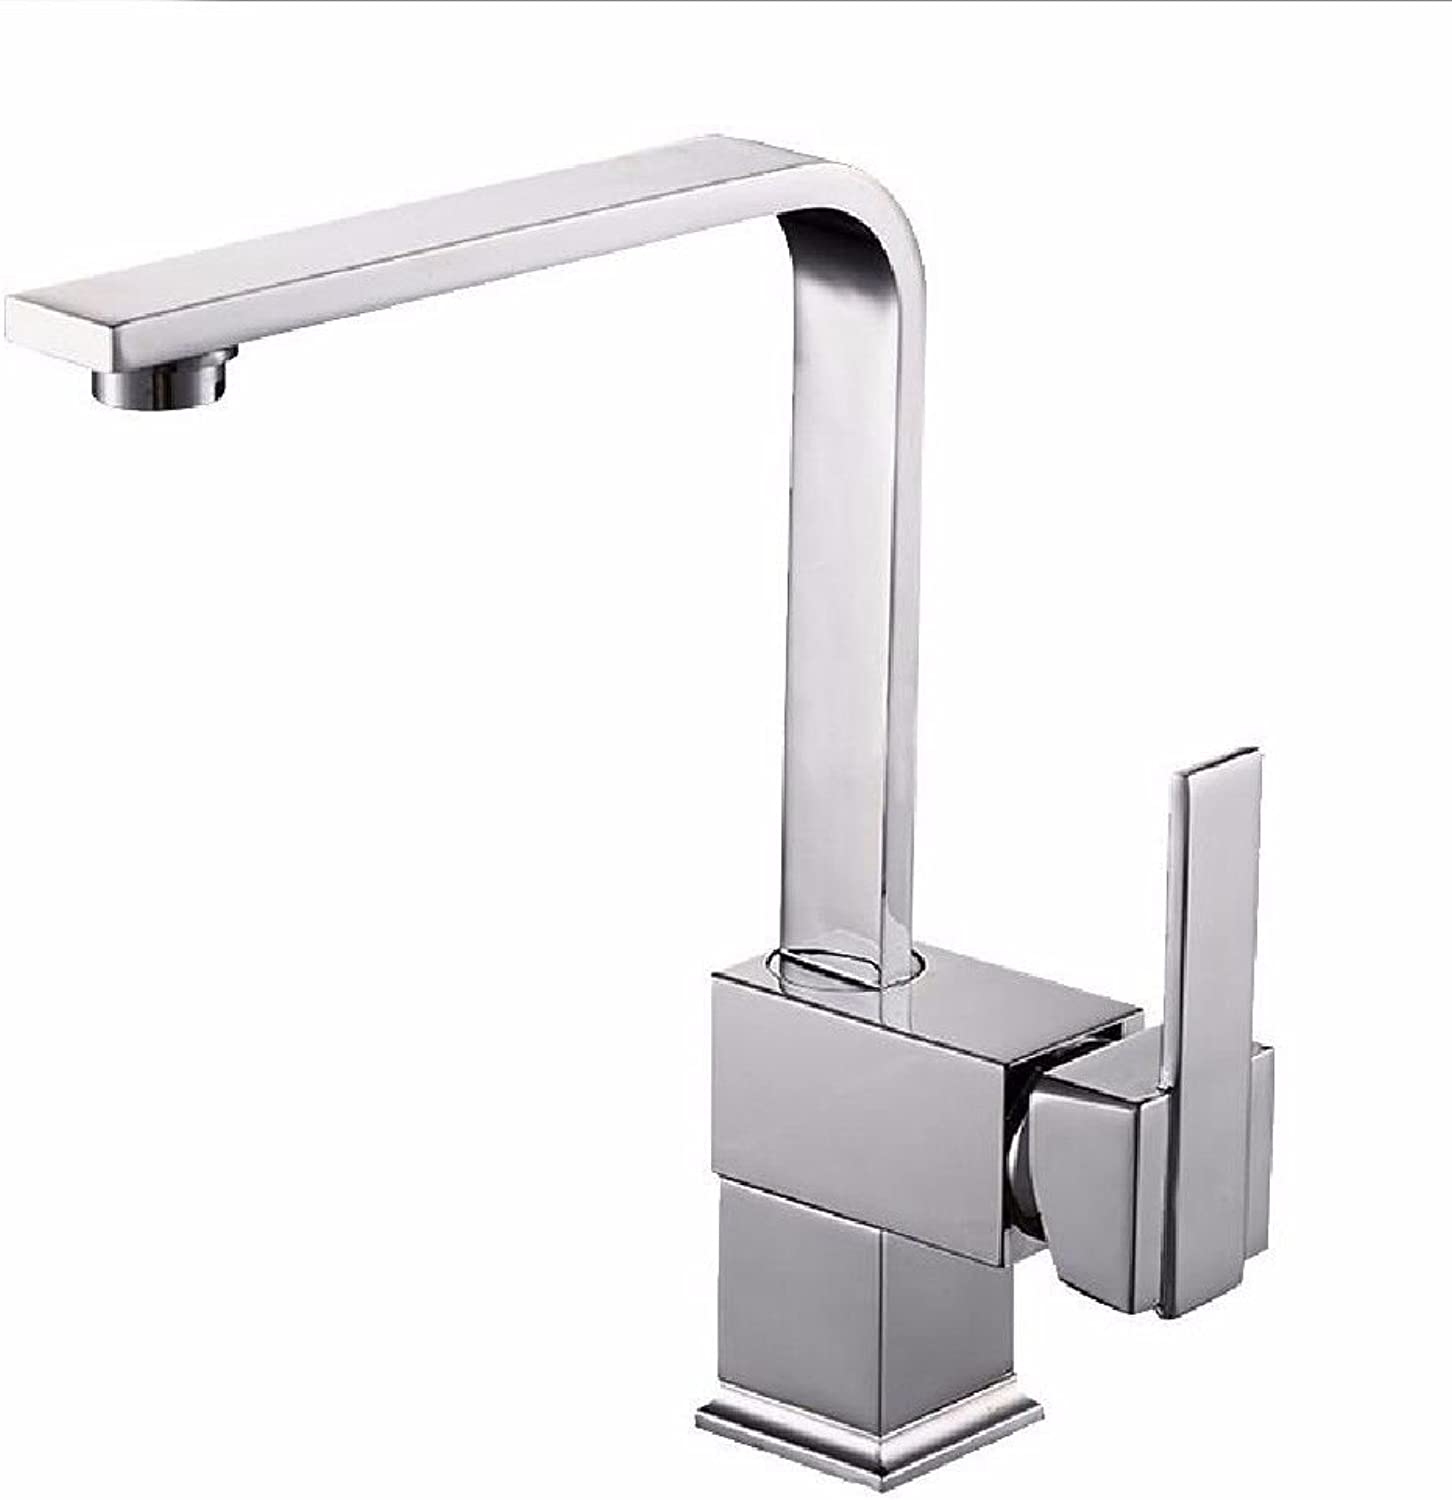 Commercial Single Lever Pull Down Kitchen Sink Faucet Brass Constructed Polished Kitchen Sink Faucet Hot and Cold Sink Faucet Copper Hot and Cold Kitchen Faucet